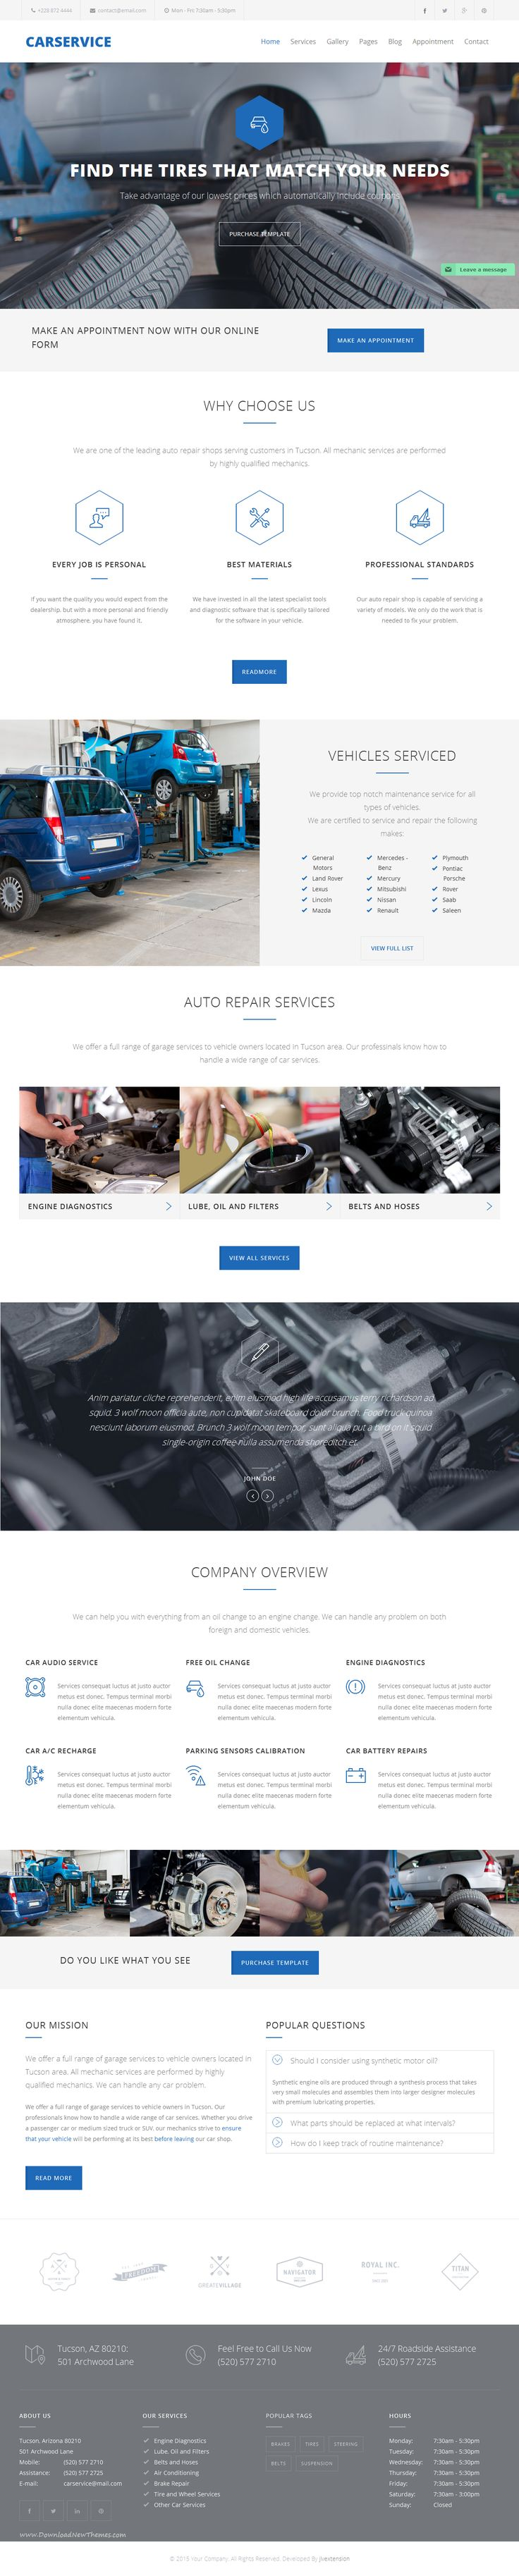 Carservice is a responsive and retina ready #Joomla #Template best suitable for auto mechanic, car repair shop, mechanic #workshop, car repair services, auto painting, auto detailing, tire or wheel shop.